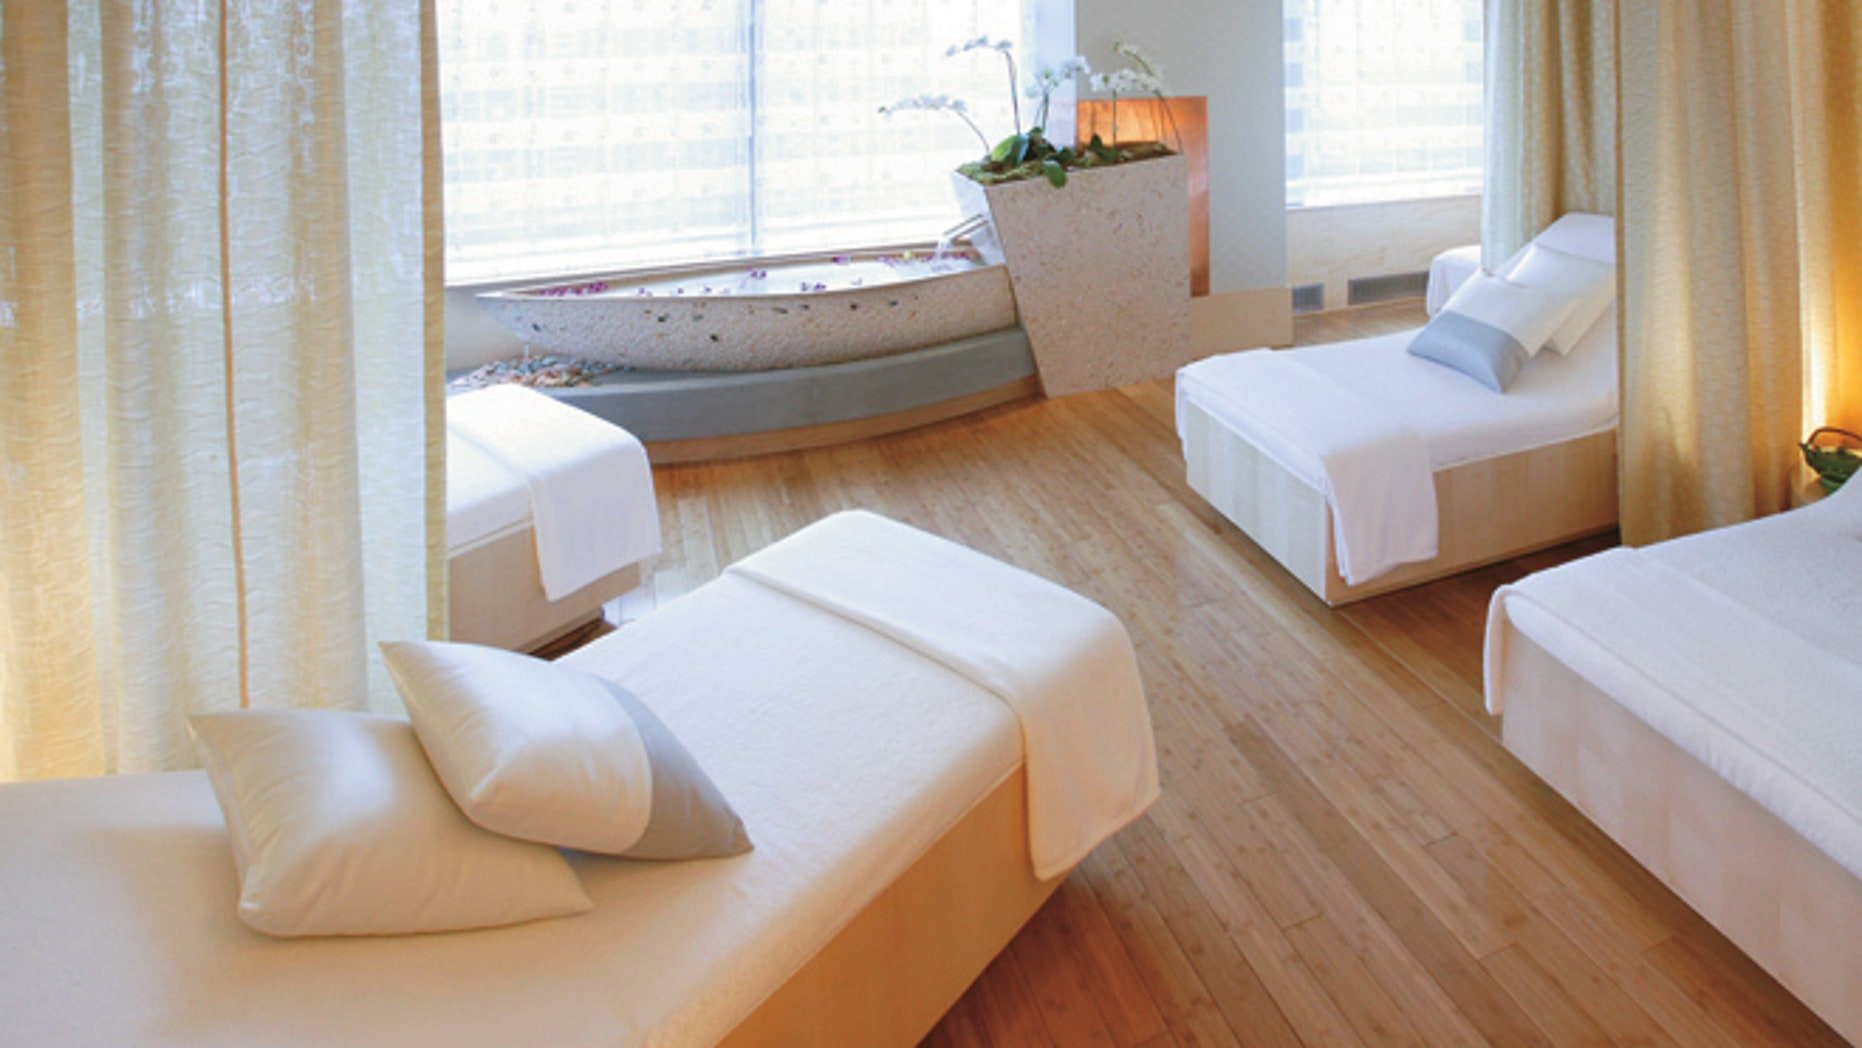 The Spa Relaxation Room at the Mandarin Oriental New York